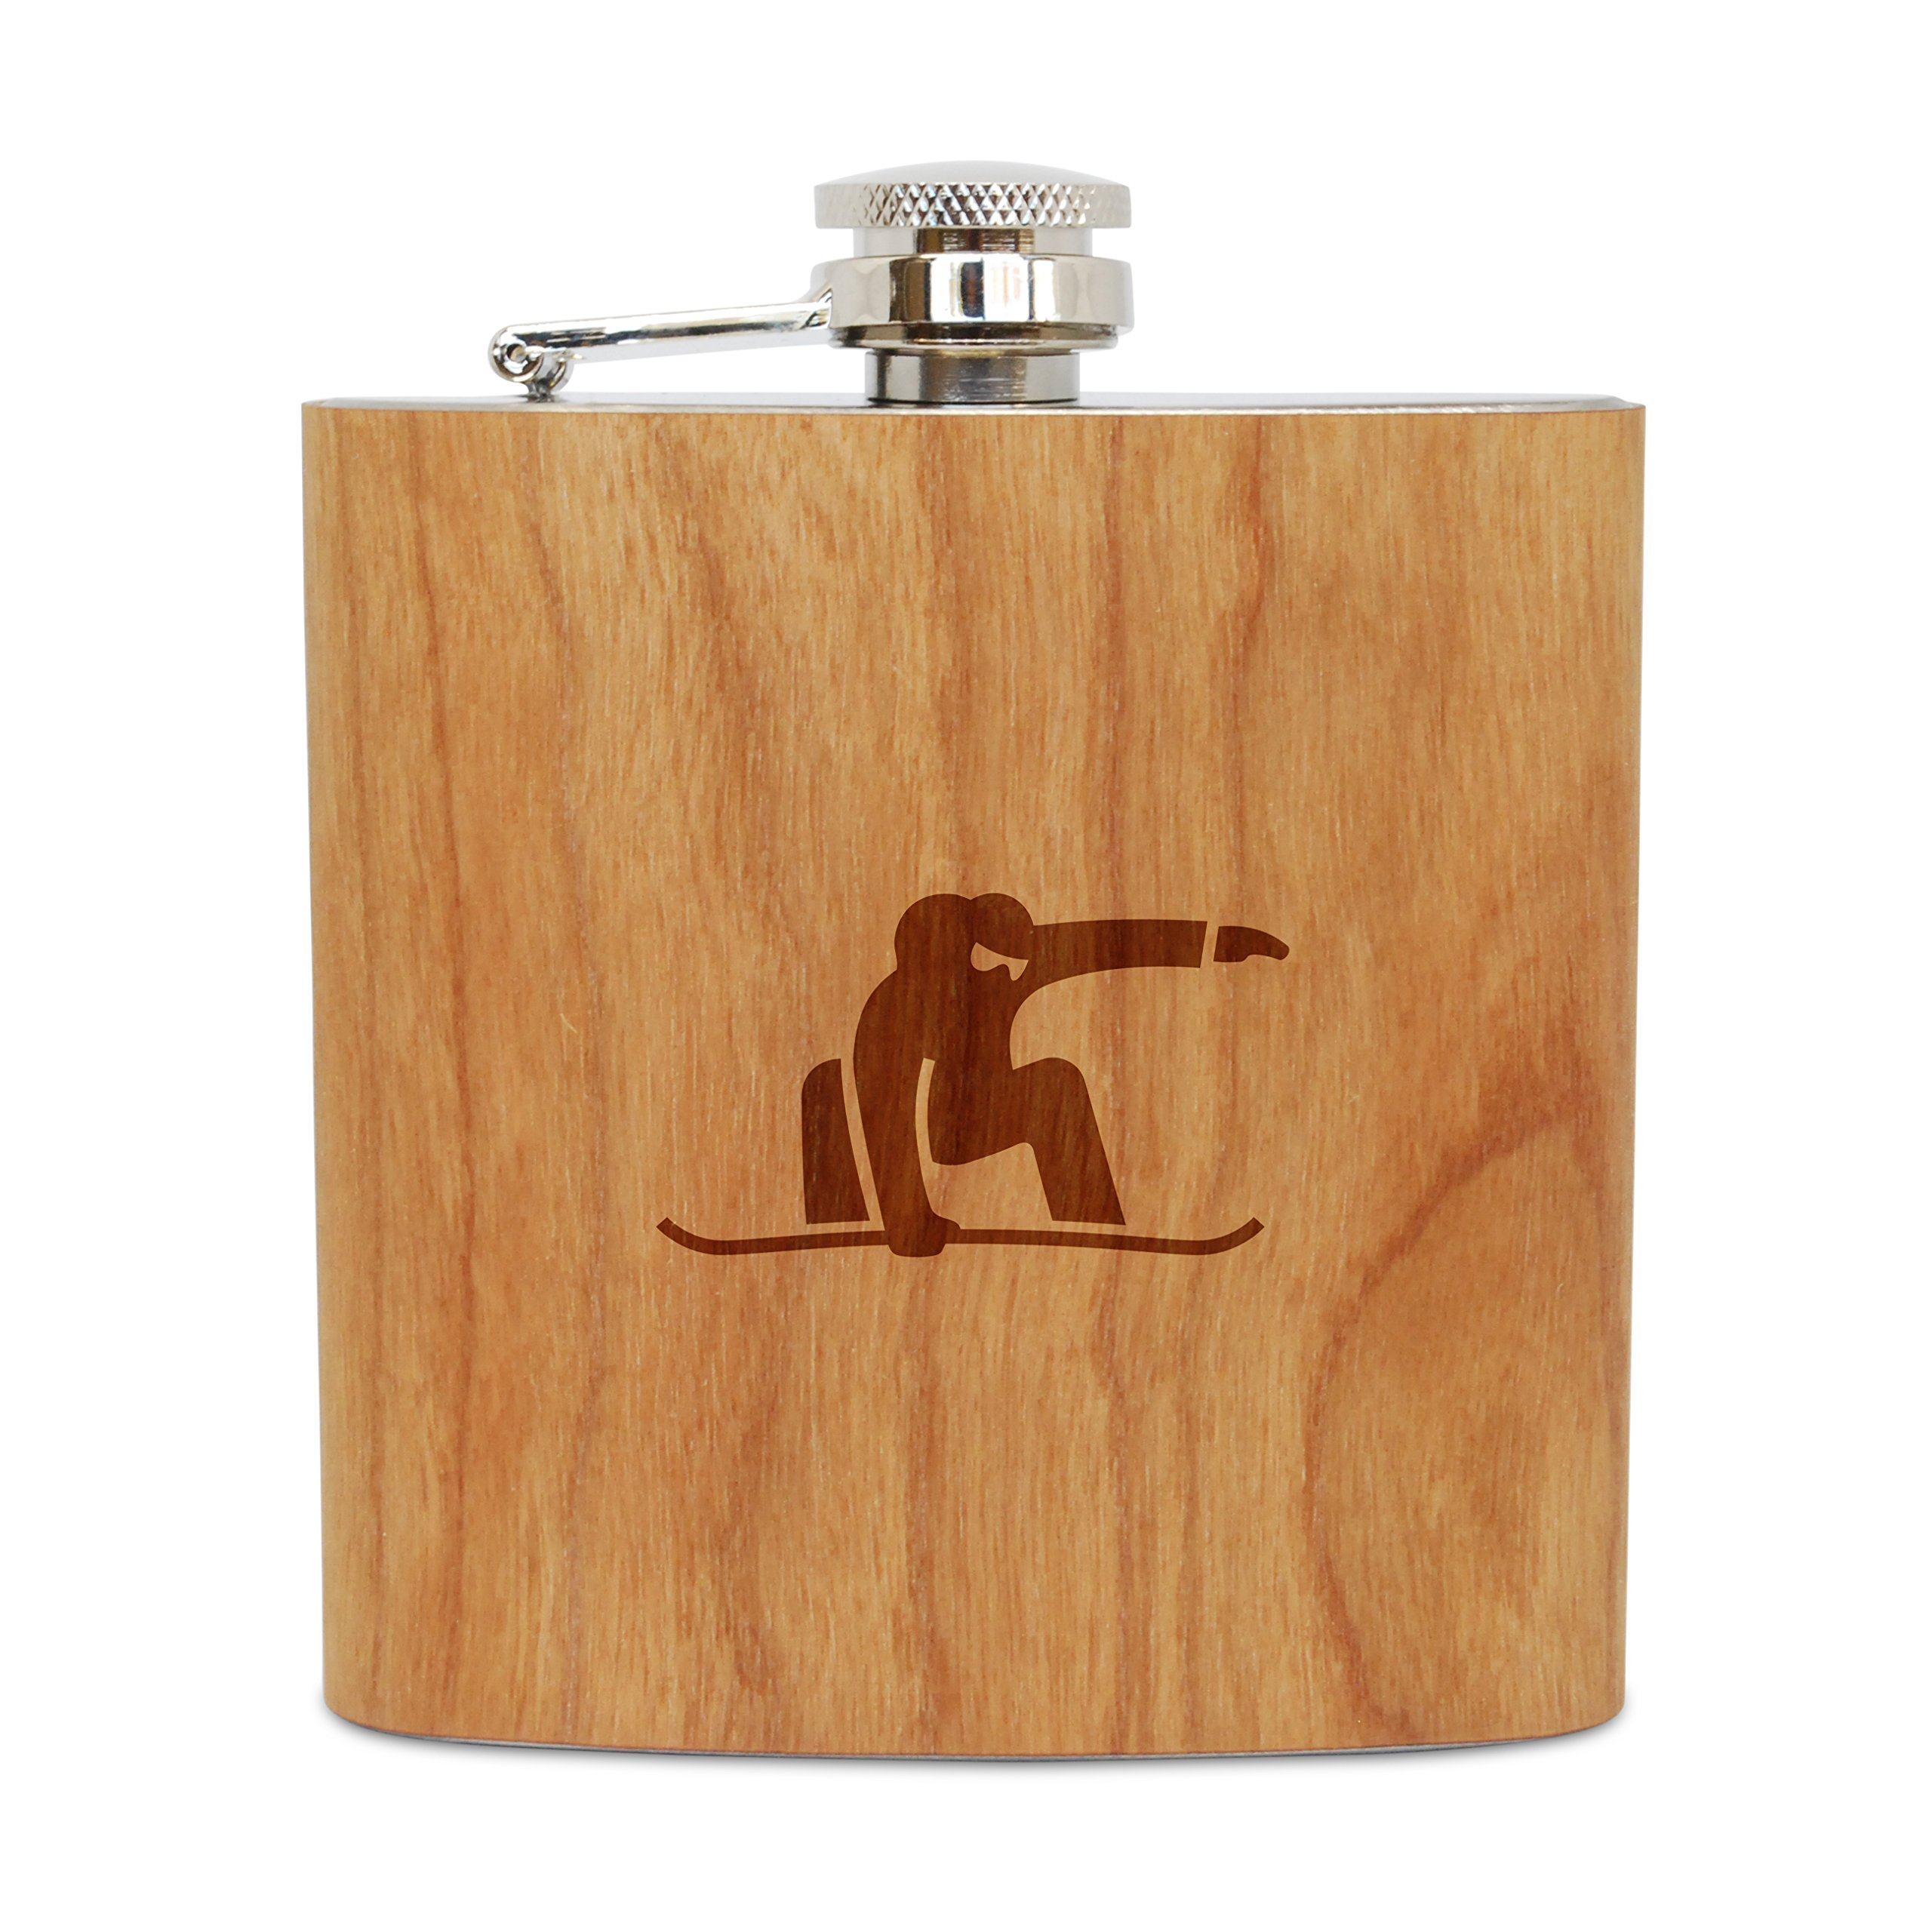 WOODEN ACCESSORIES COMPANY Cherry Wood Flask With Stainless Steel Body - Laser Engraved Flask With Snowboarding Design - 6 Oz Wood Hip Flask Handmade In USA